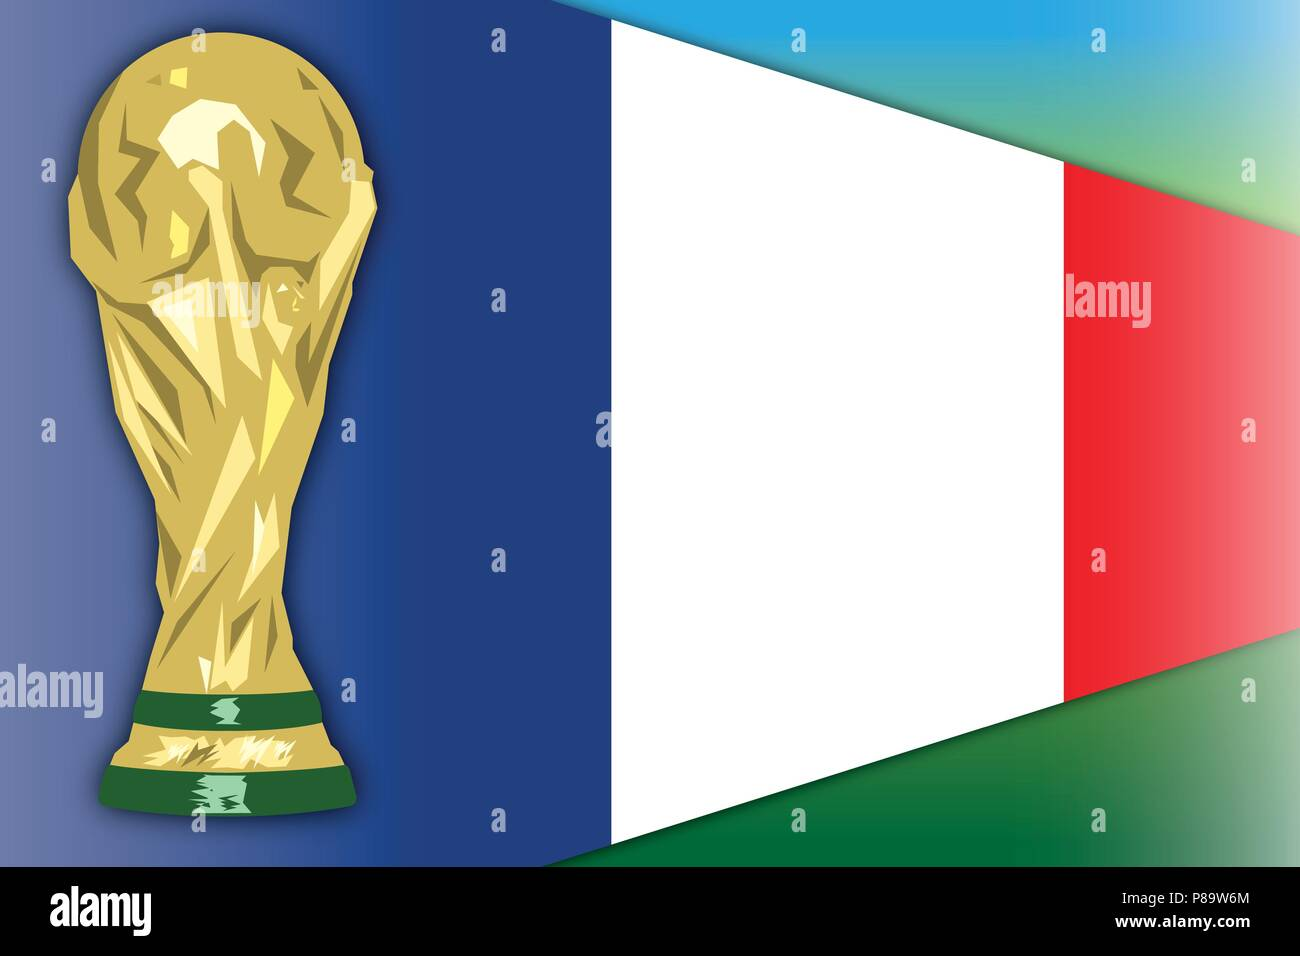 France flag and world cup, Russia 2018, final phase - Stock Vector